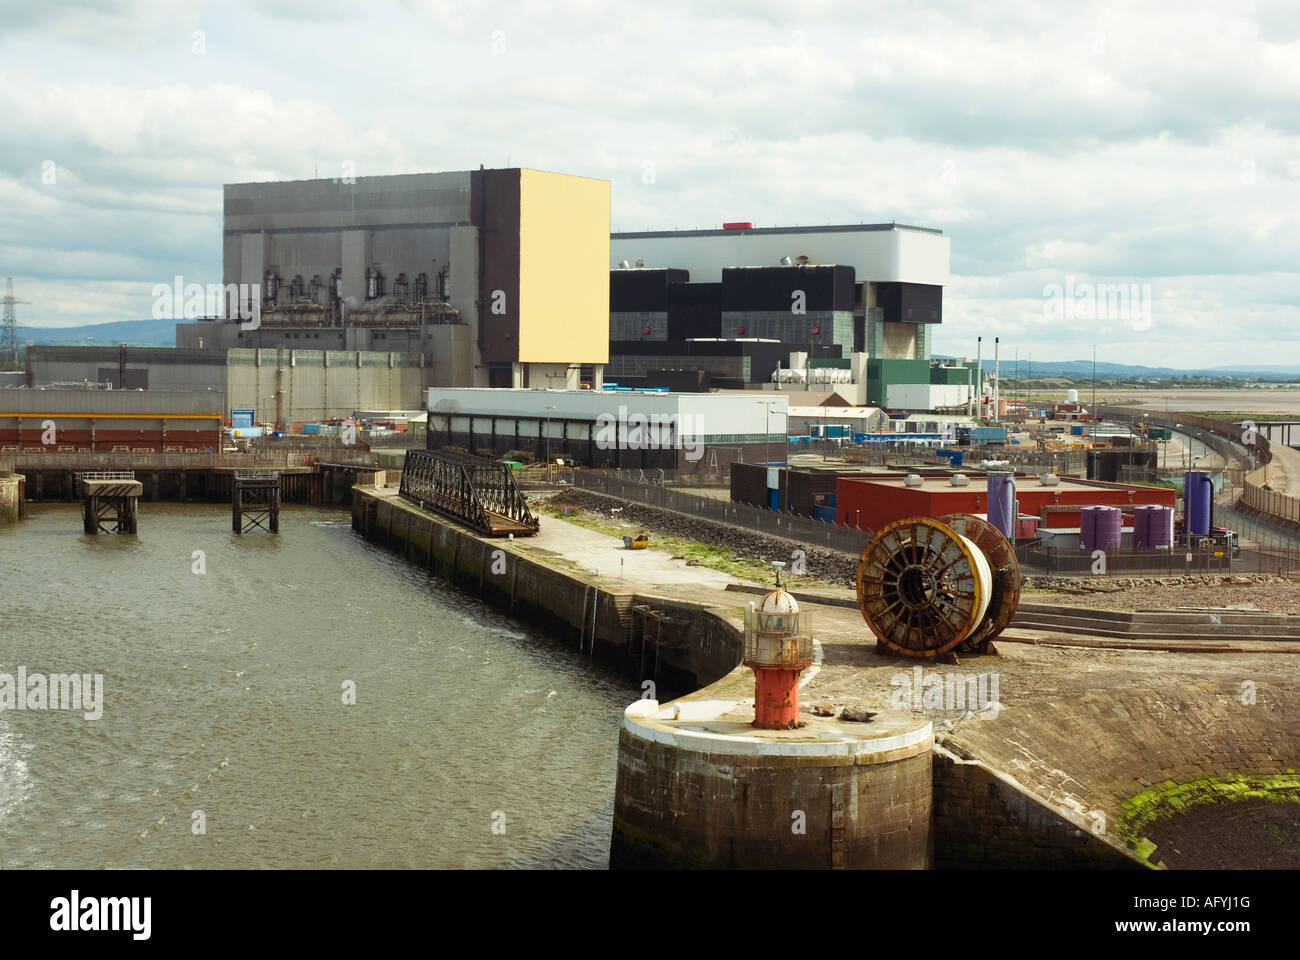 Heysham nuclear power station, Lancashire UK - Stock Image